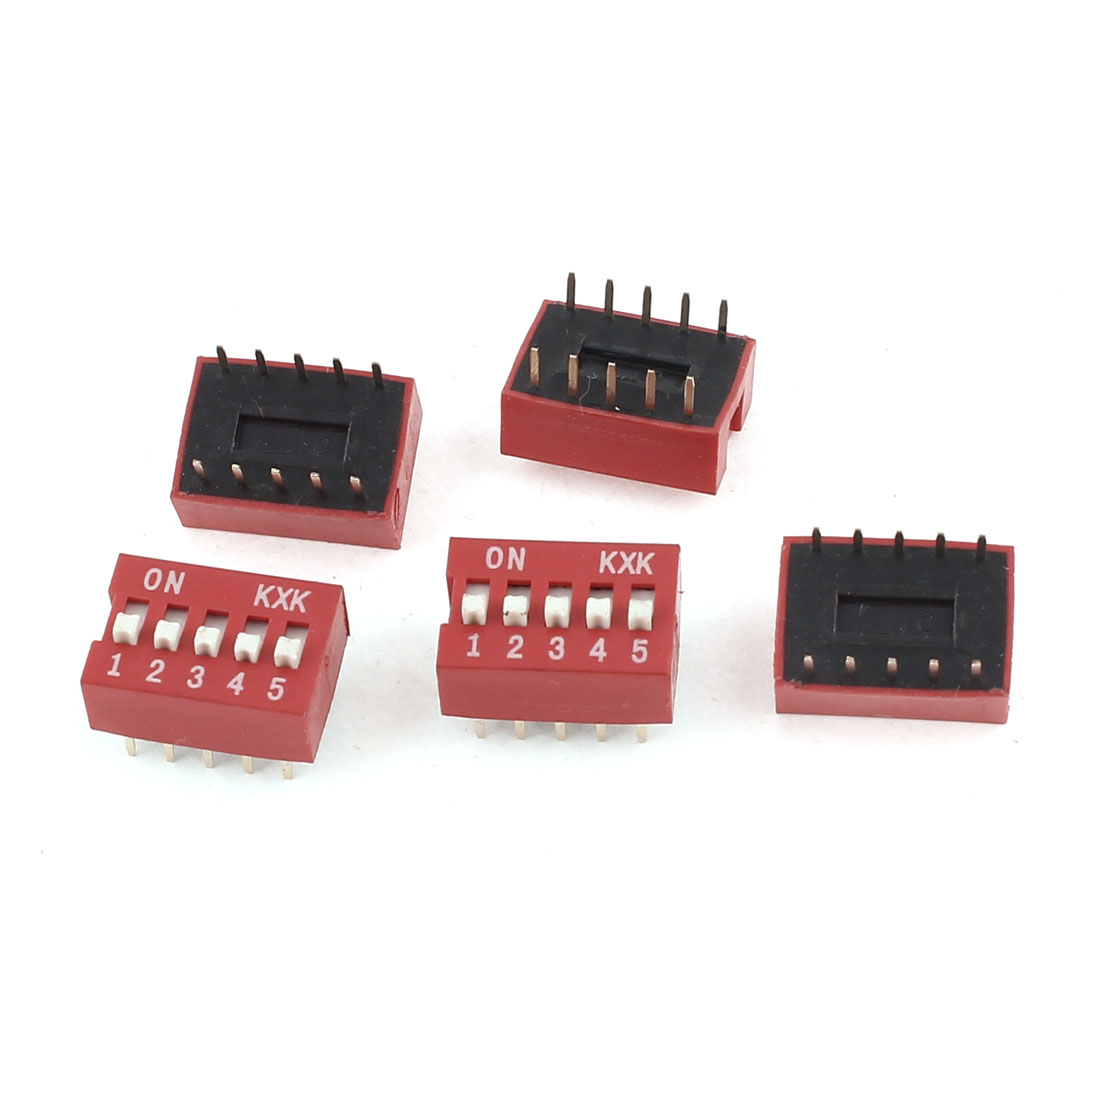 5 Pieces DIP Mount Dual Row 10 Pins 5 Positions Sliding Switch 2.54mm Pitch Red